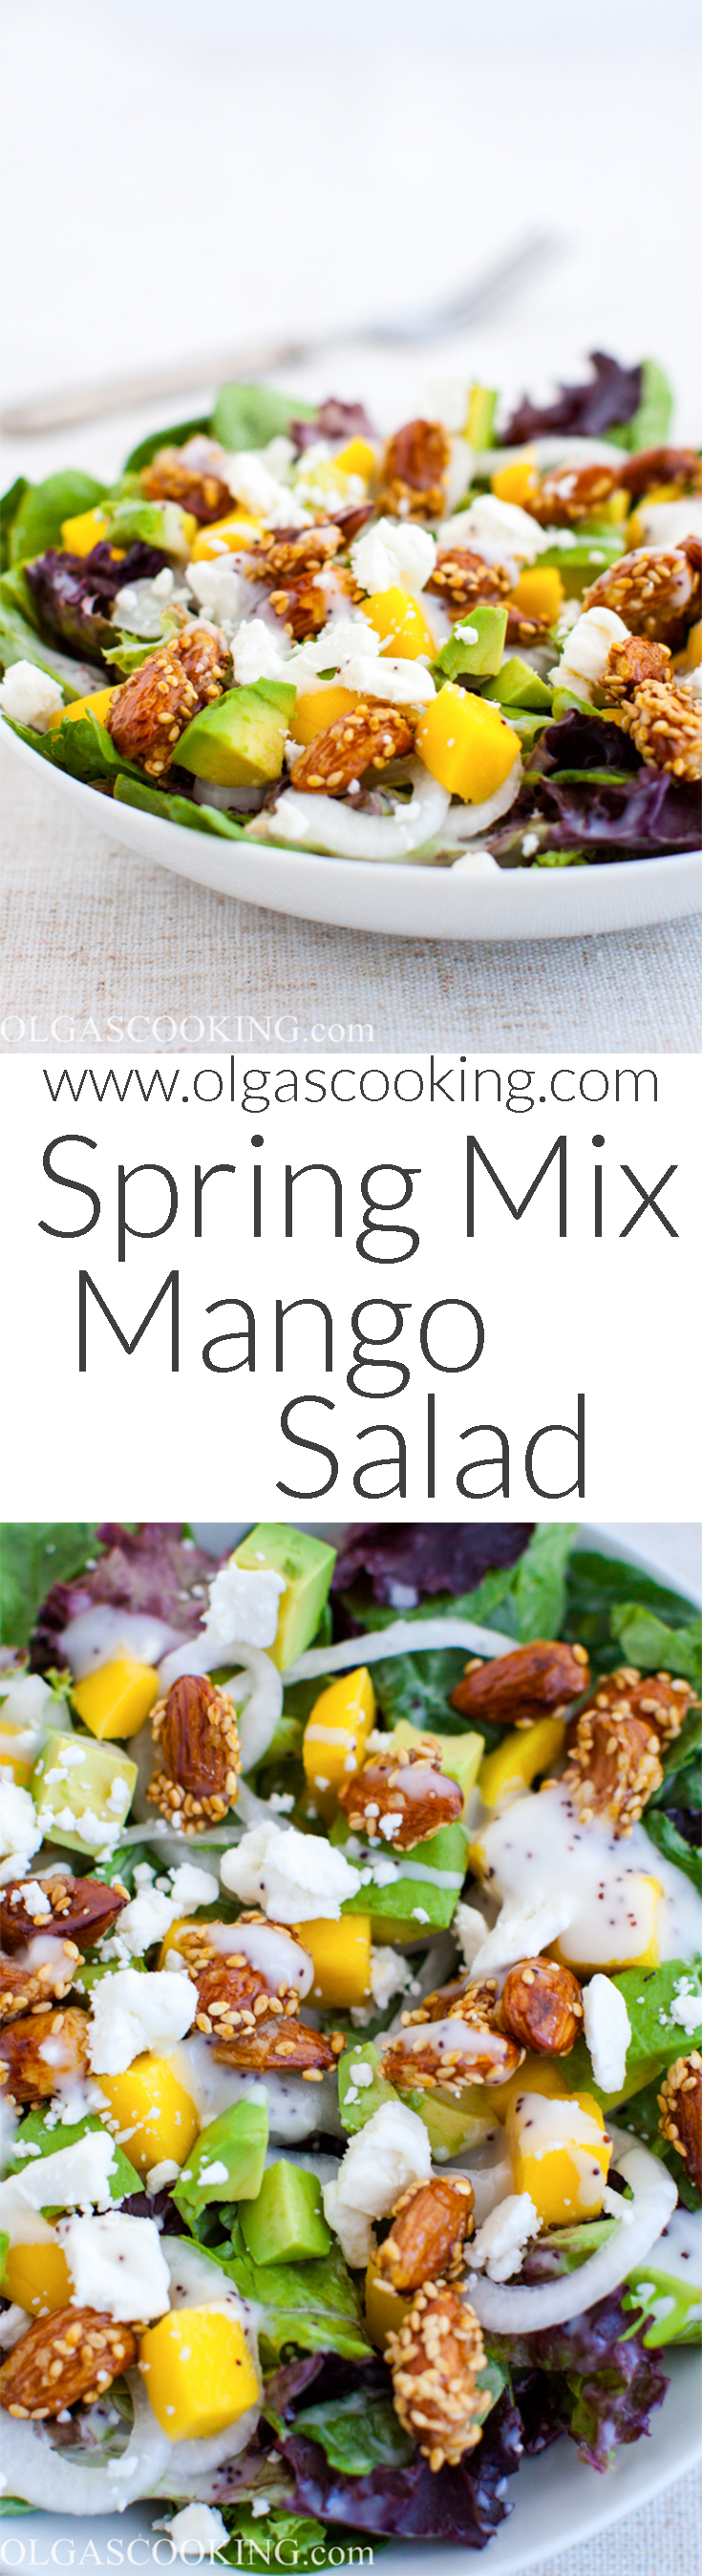 Spring Mix Mango Salad